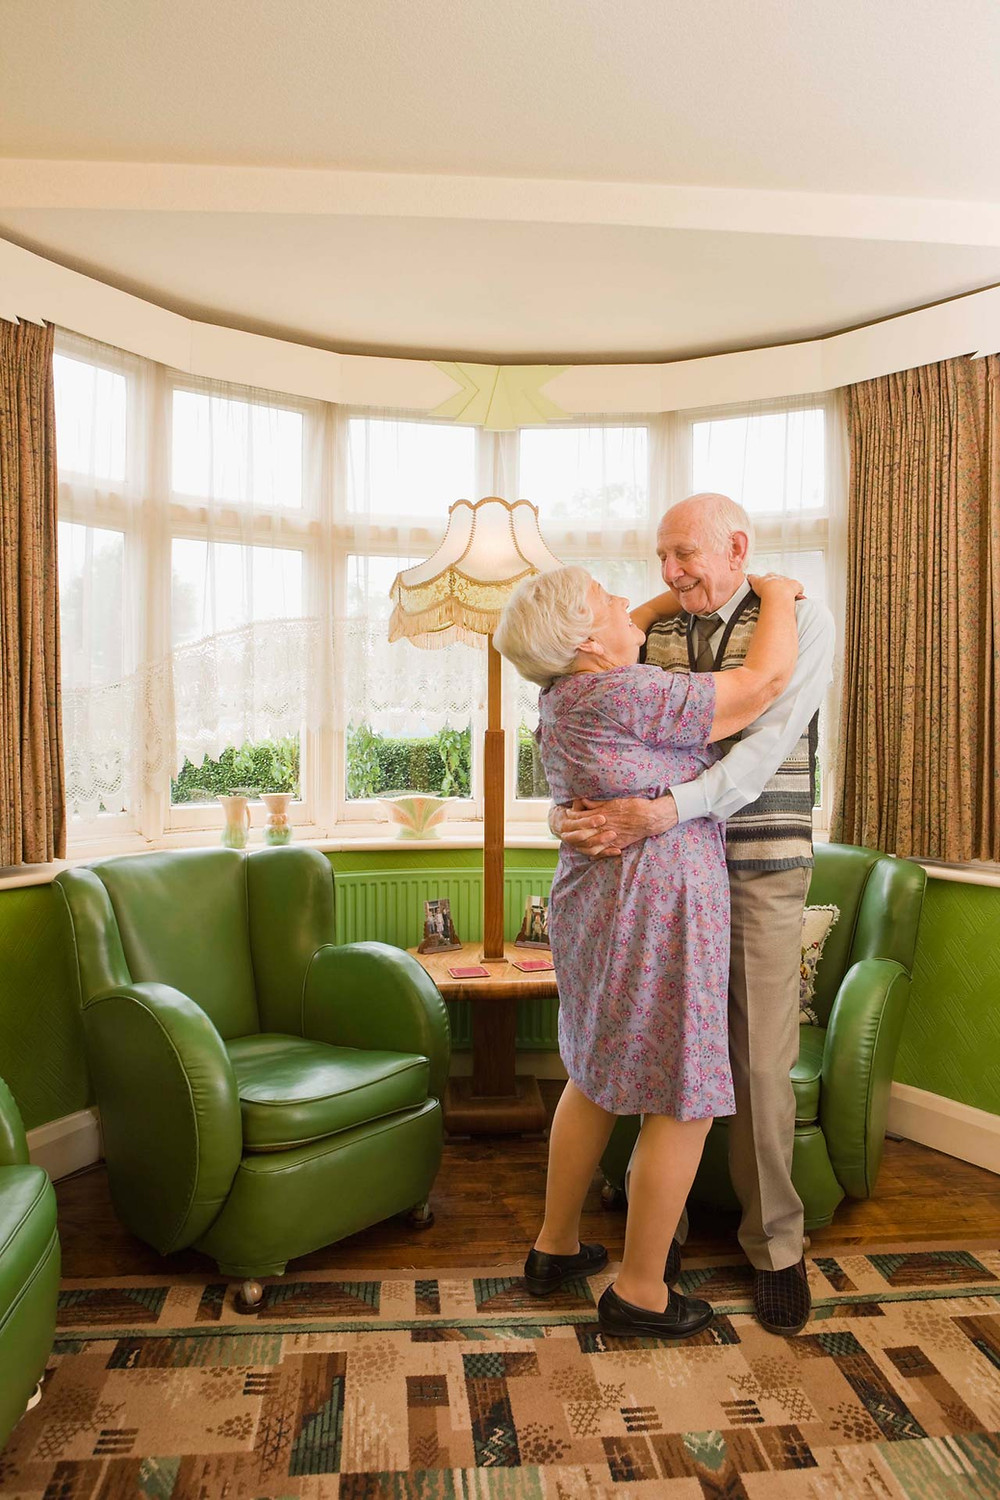 Elderly Couple Dancing in their Living Room